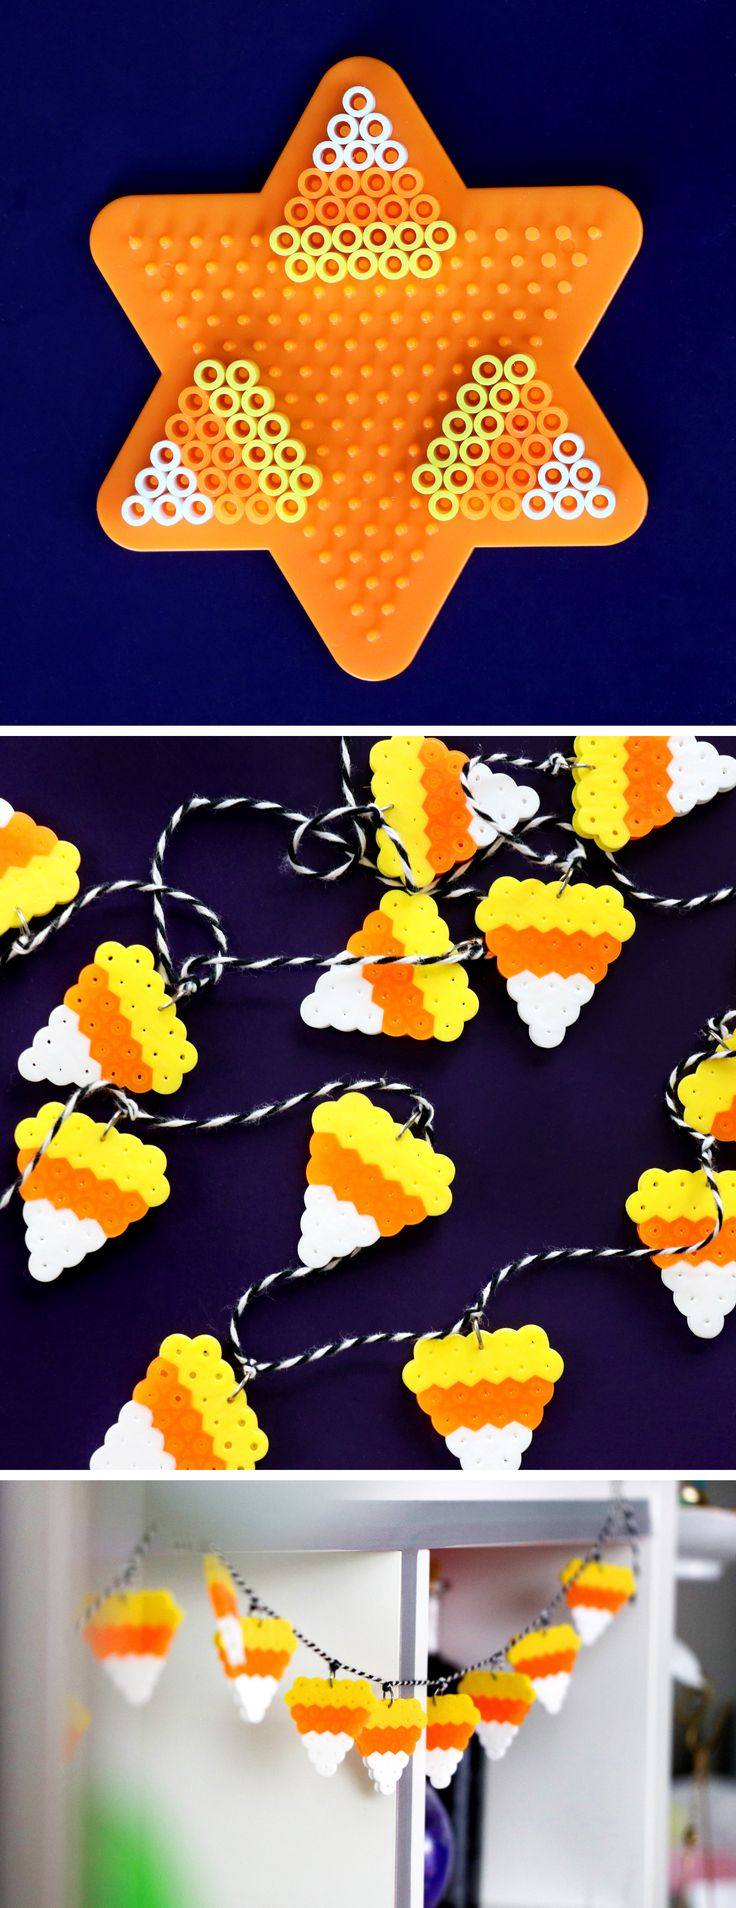 Halloween DIYs to Make When You're Bored - DIY Candy Corn Perler Bead Garland | Karen Kavett